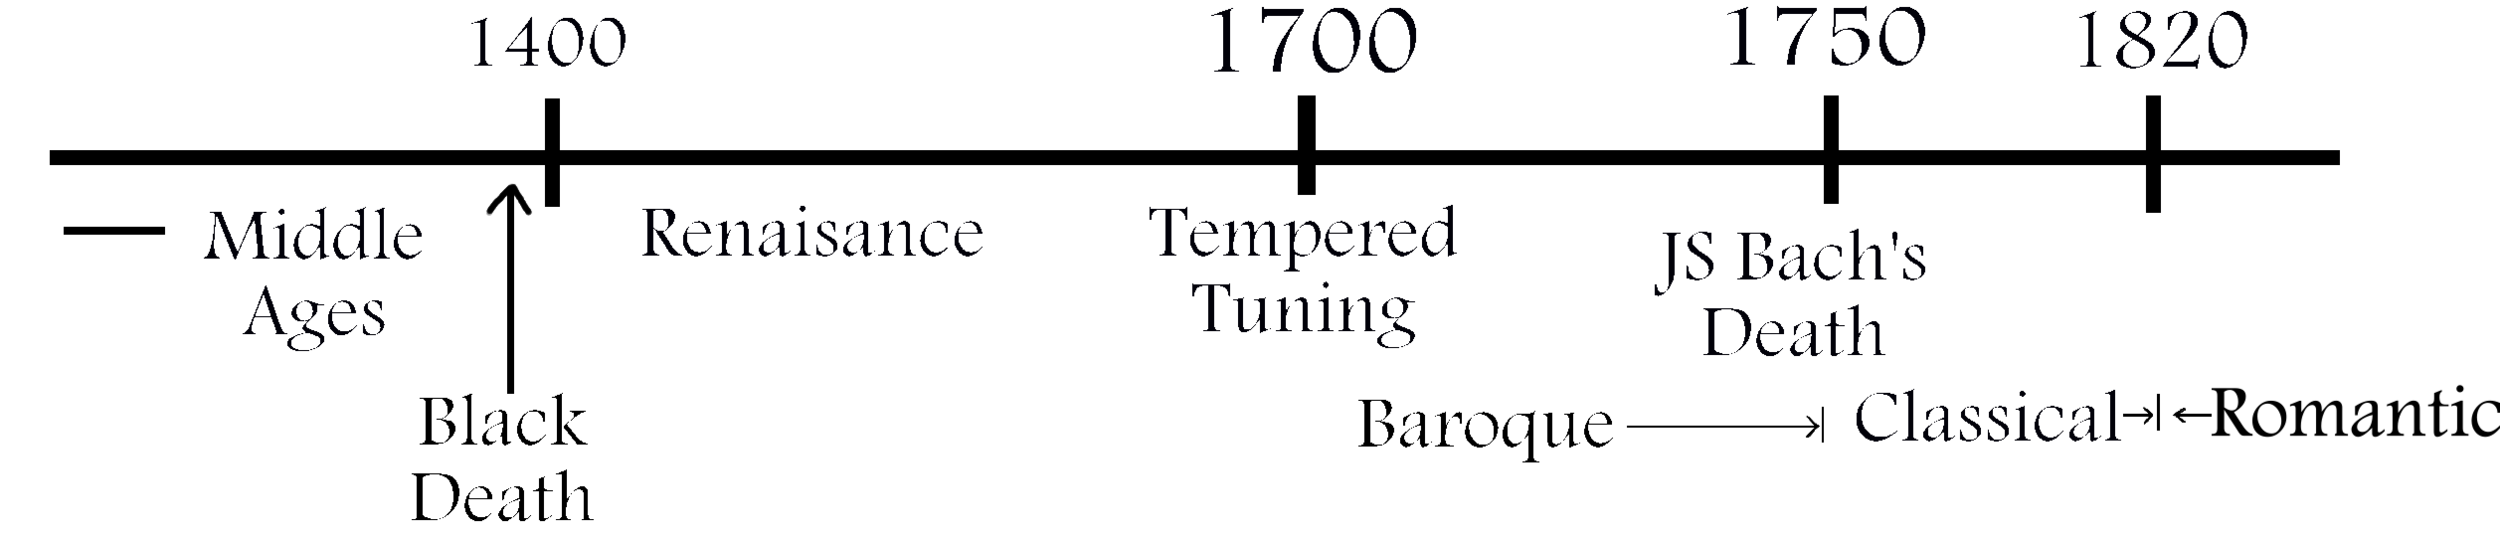 Timeline to 1900.png